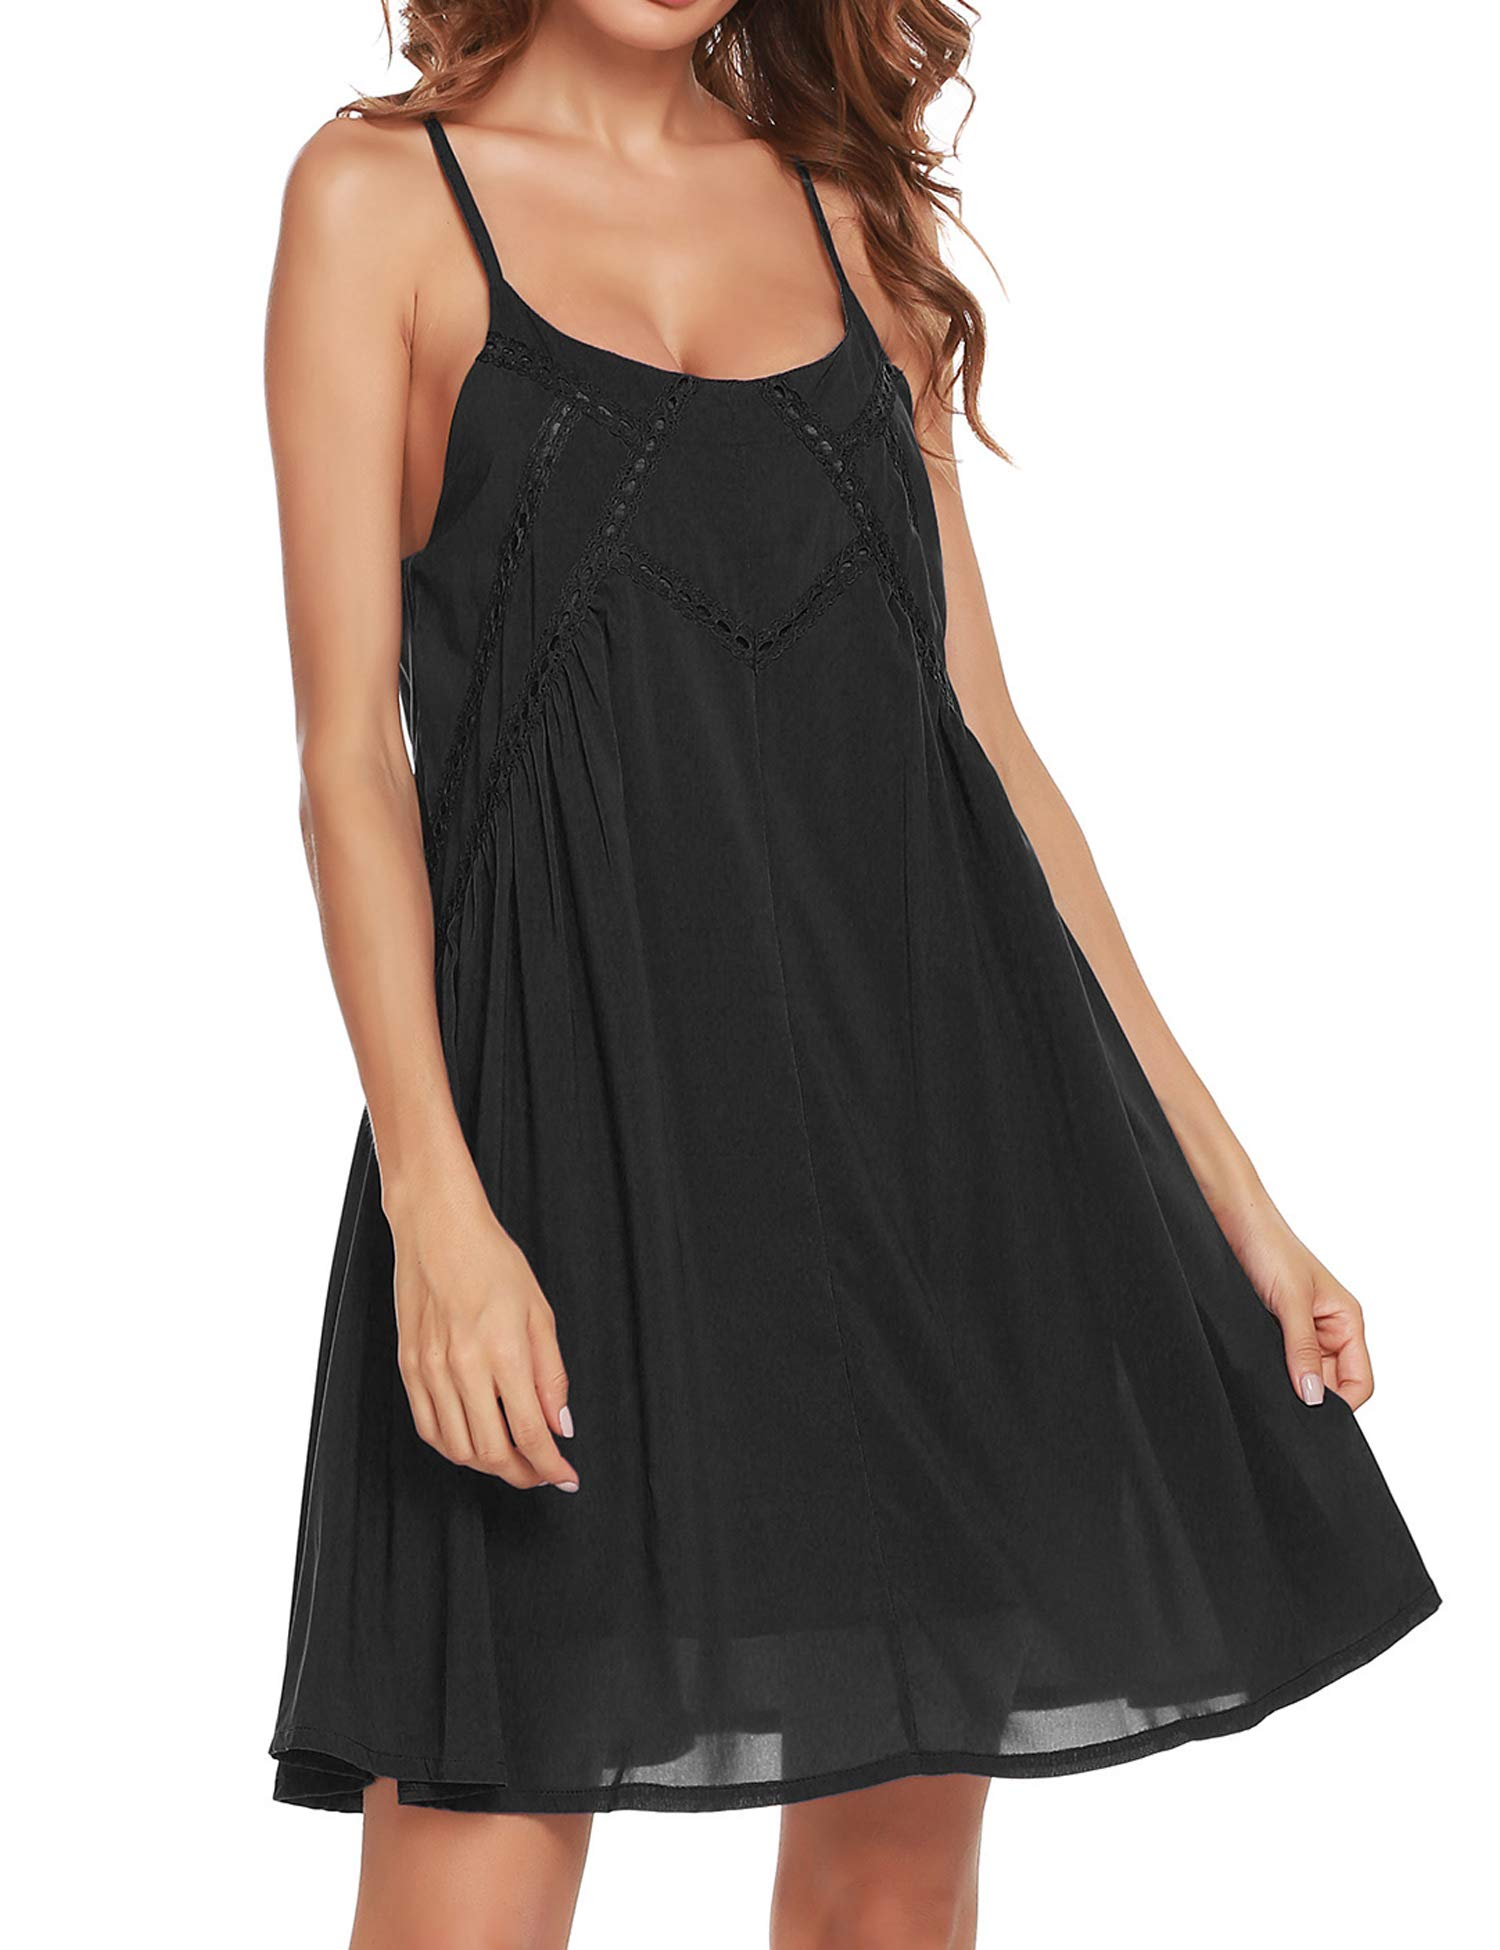 OD'lover Women Summer Spaghetti Strap Sundress Sleeveless Beach Slip Dress